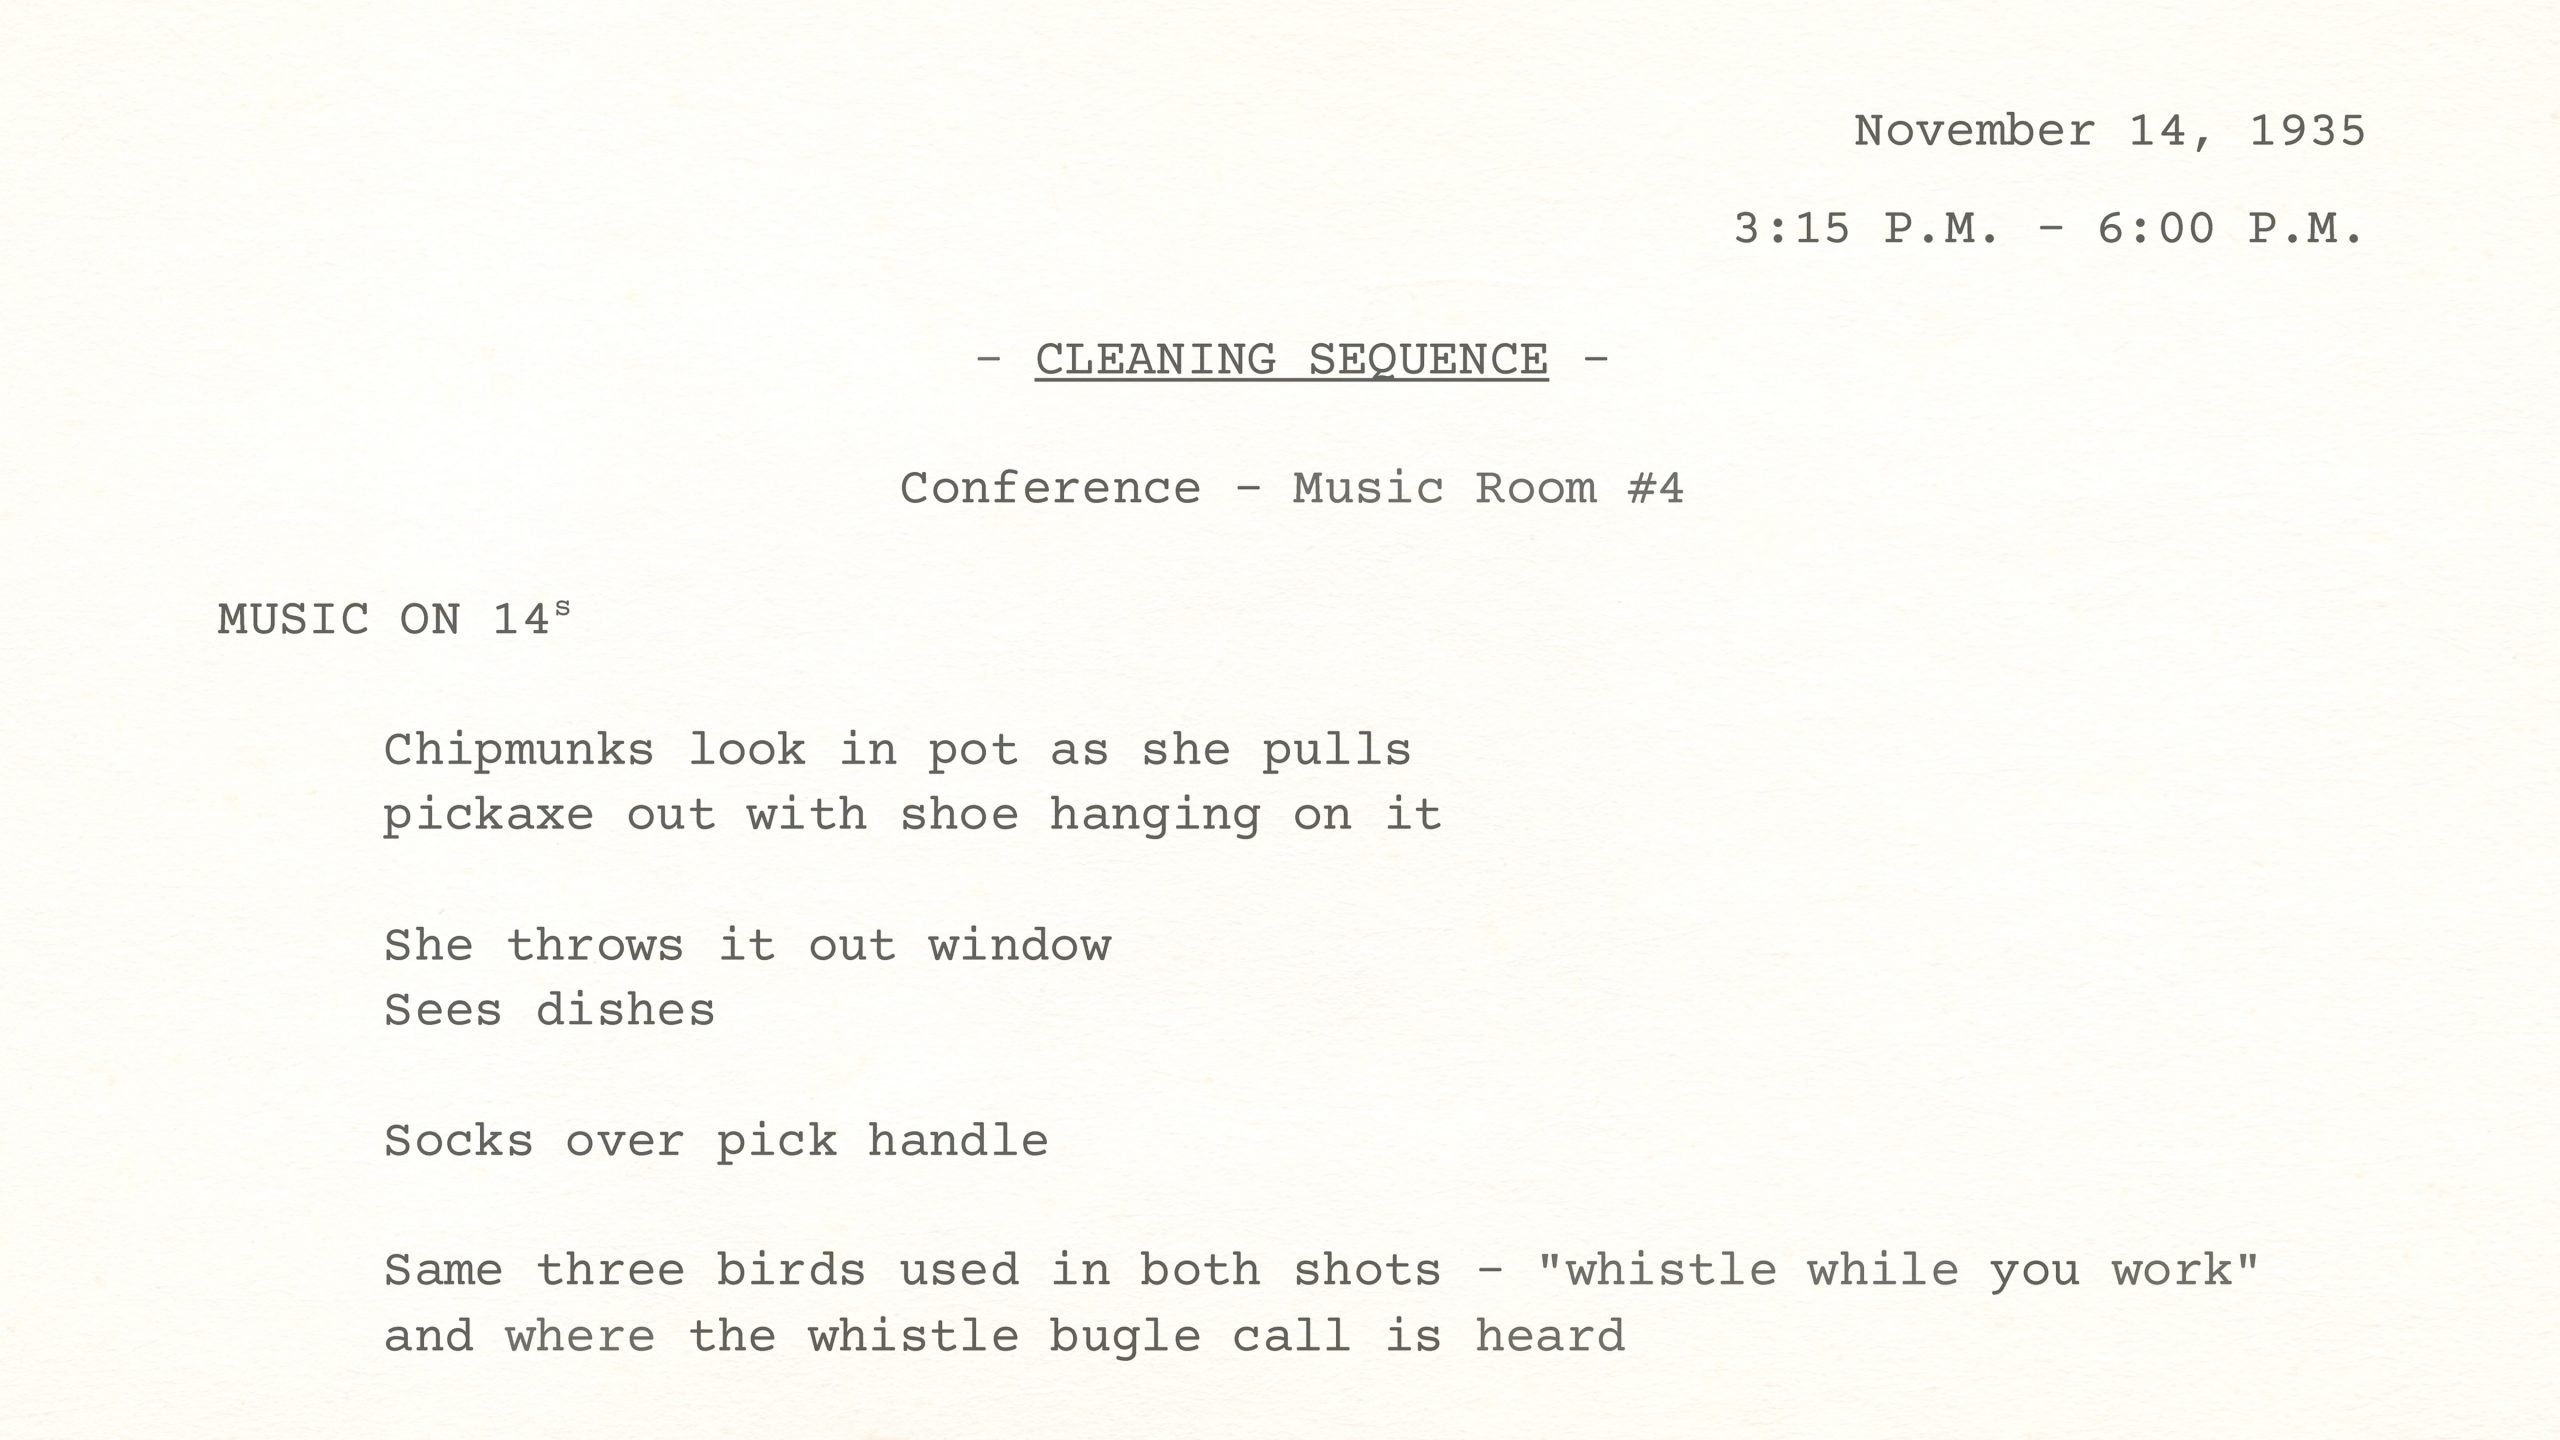 SNOW WHITE CLEANING SEQUENCE Conference, November 14, 1935